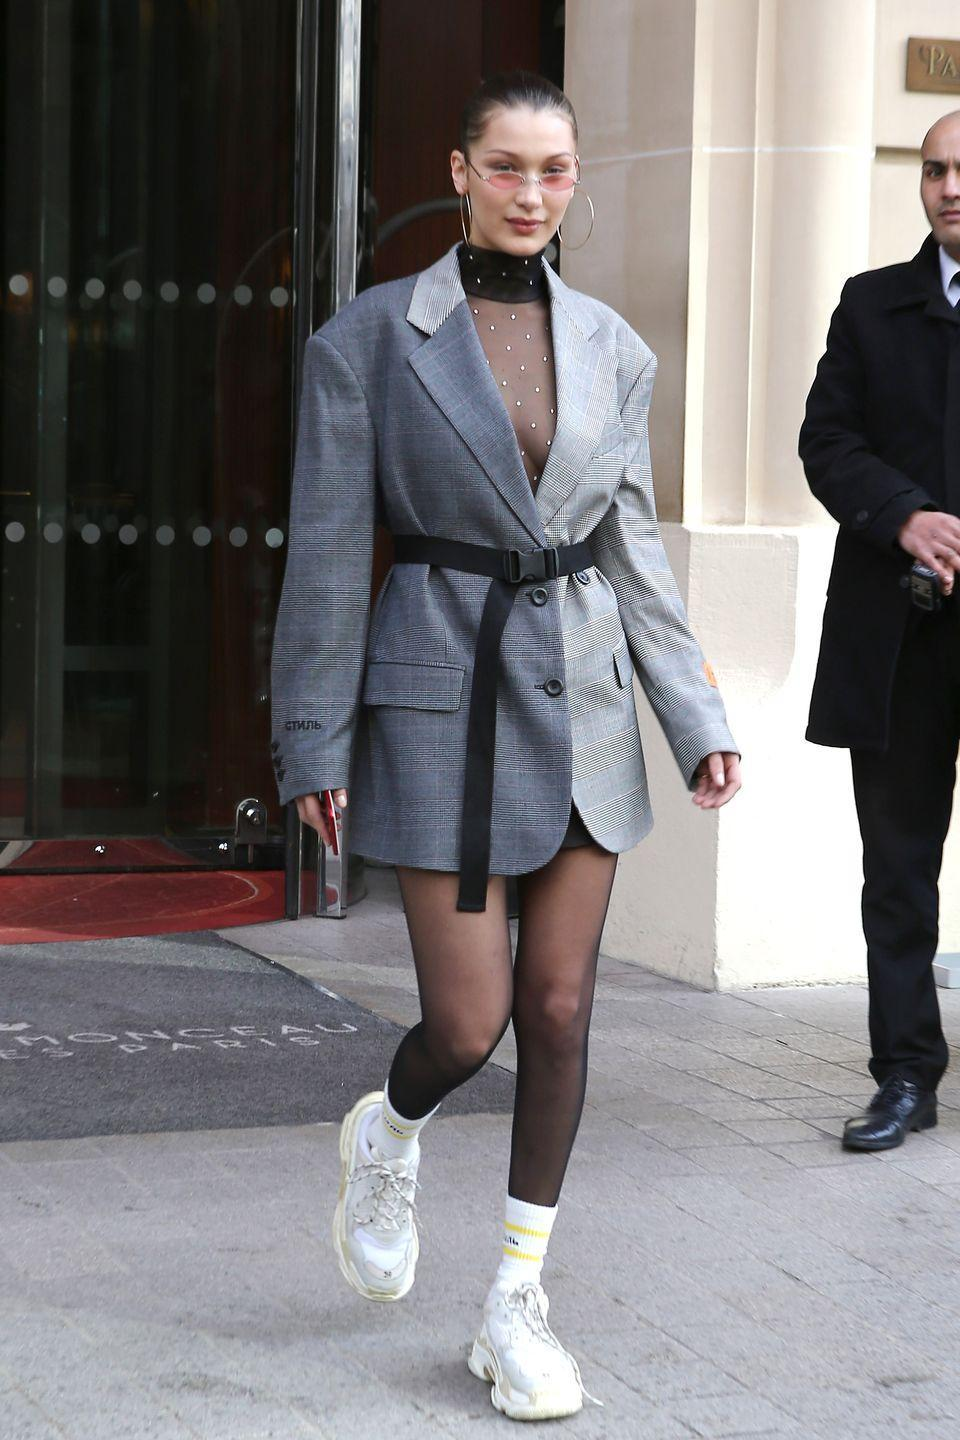 <p>In a Heron Preston studded sheer turtleneck dress, oversized blazer, and tube socks while out in Paris. The model accessorized the look with oversized hoop earrings, tiny lens sunglasses, and dad sneakers. </p>